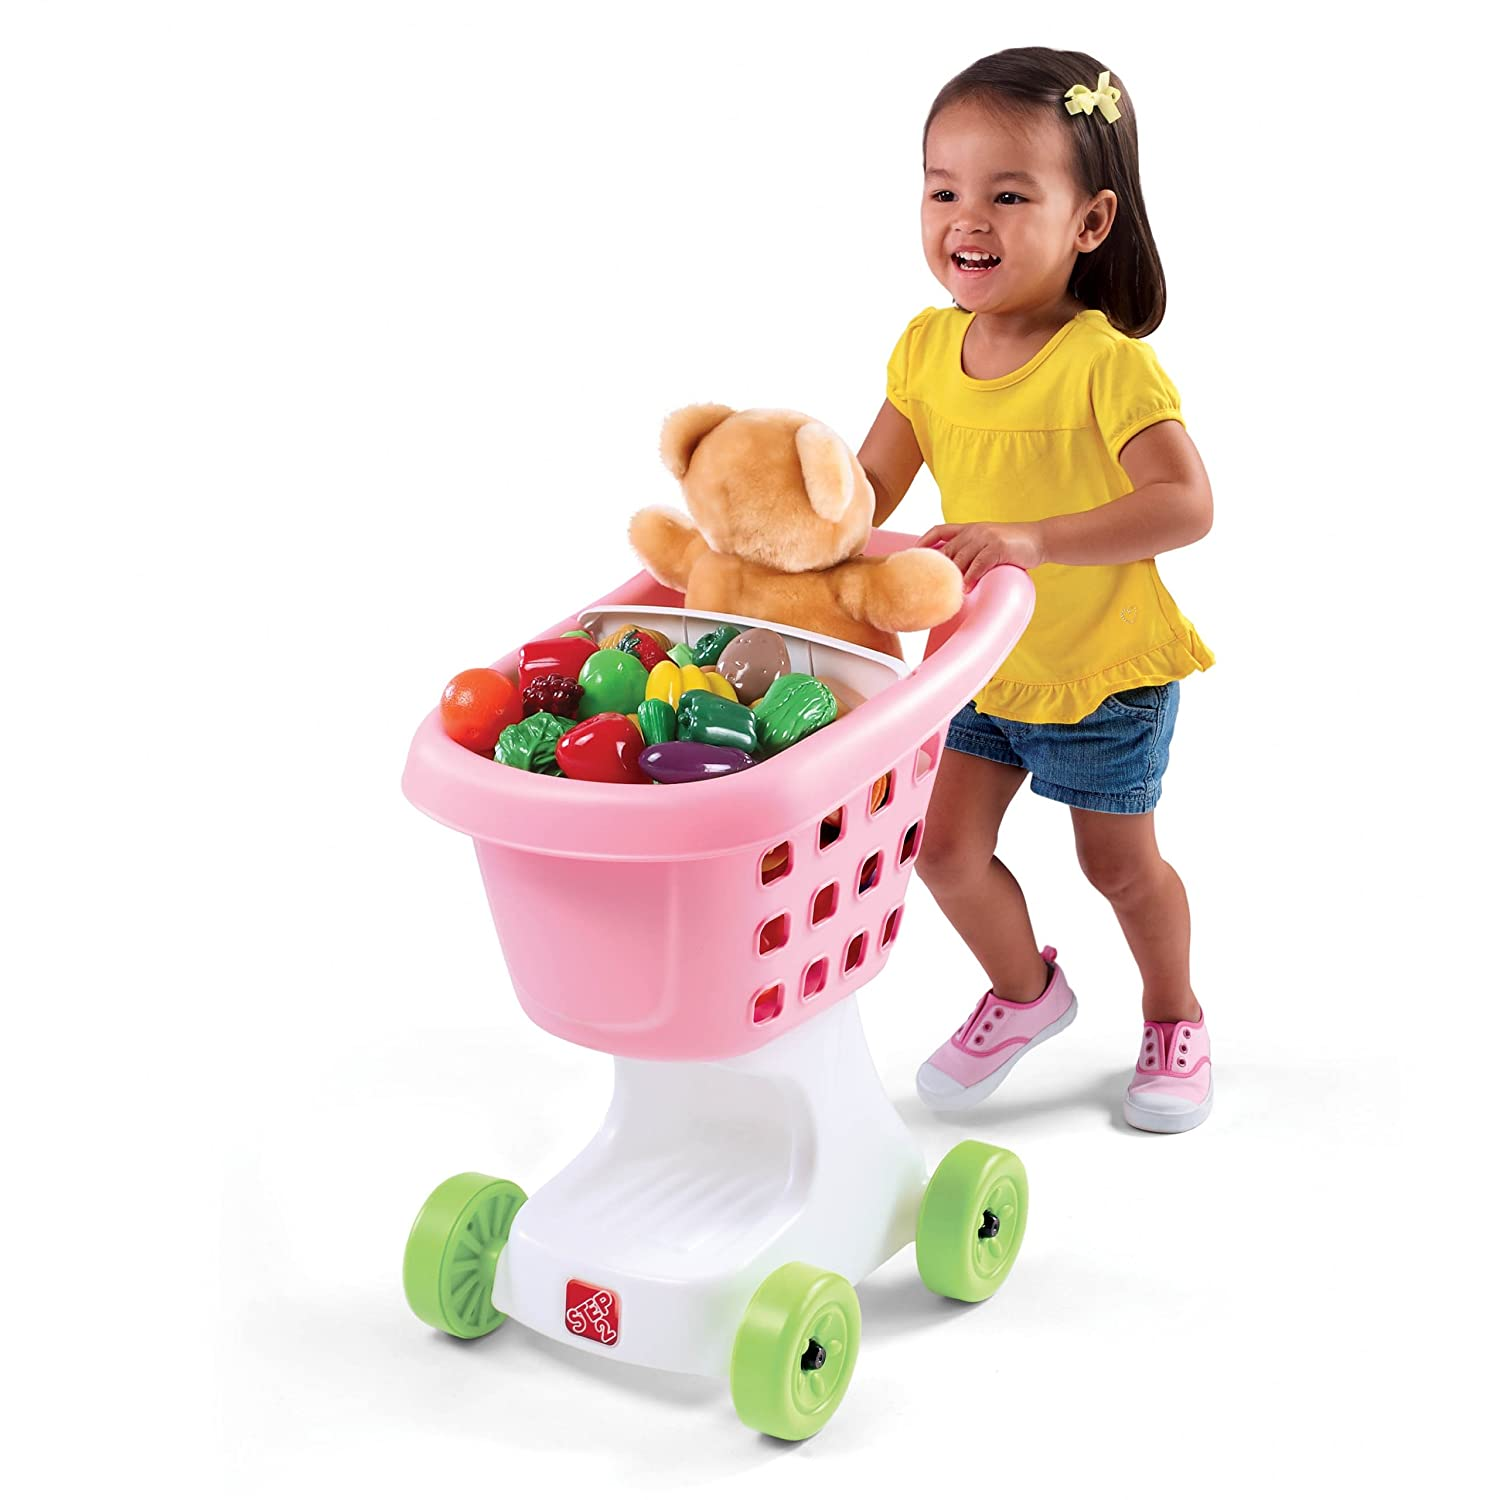 Amazon Step2 Little Helper s Shopping Cart Pink Toys & Games